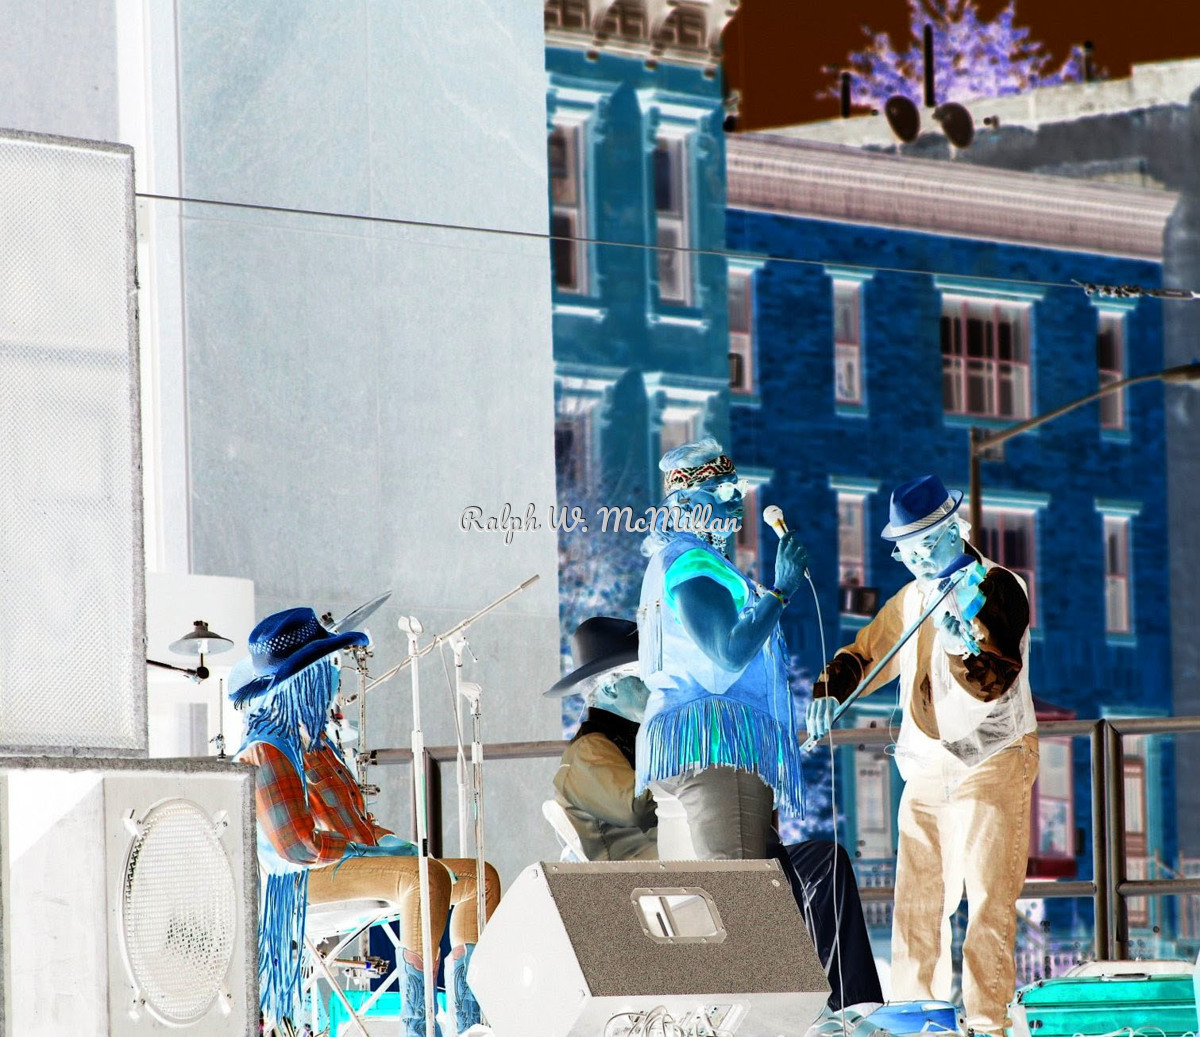 Hoedown Band in Harlem (large view)